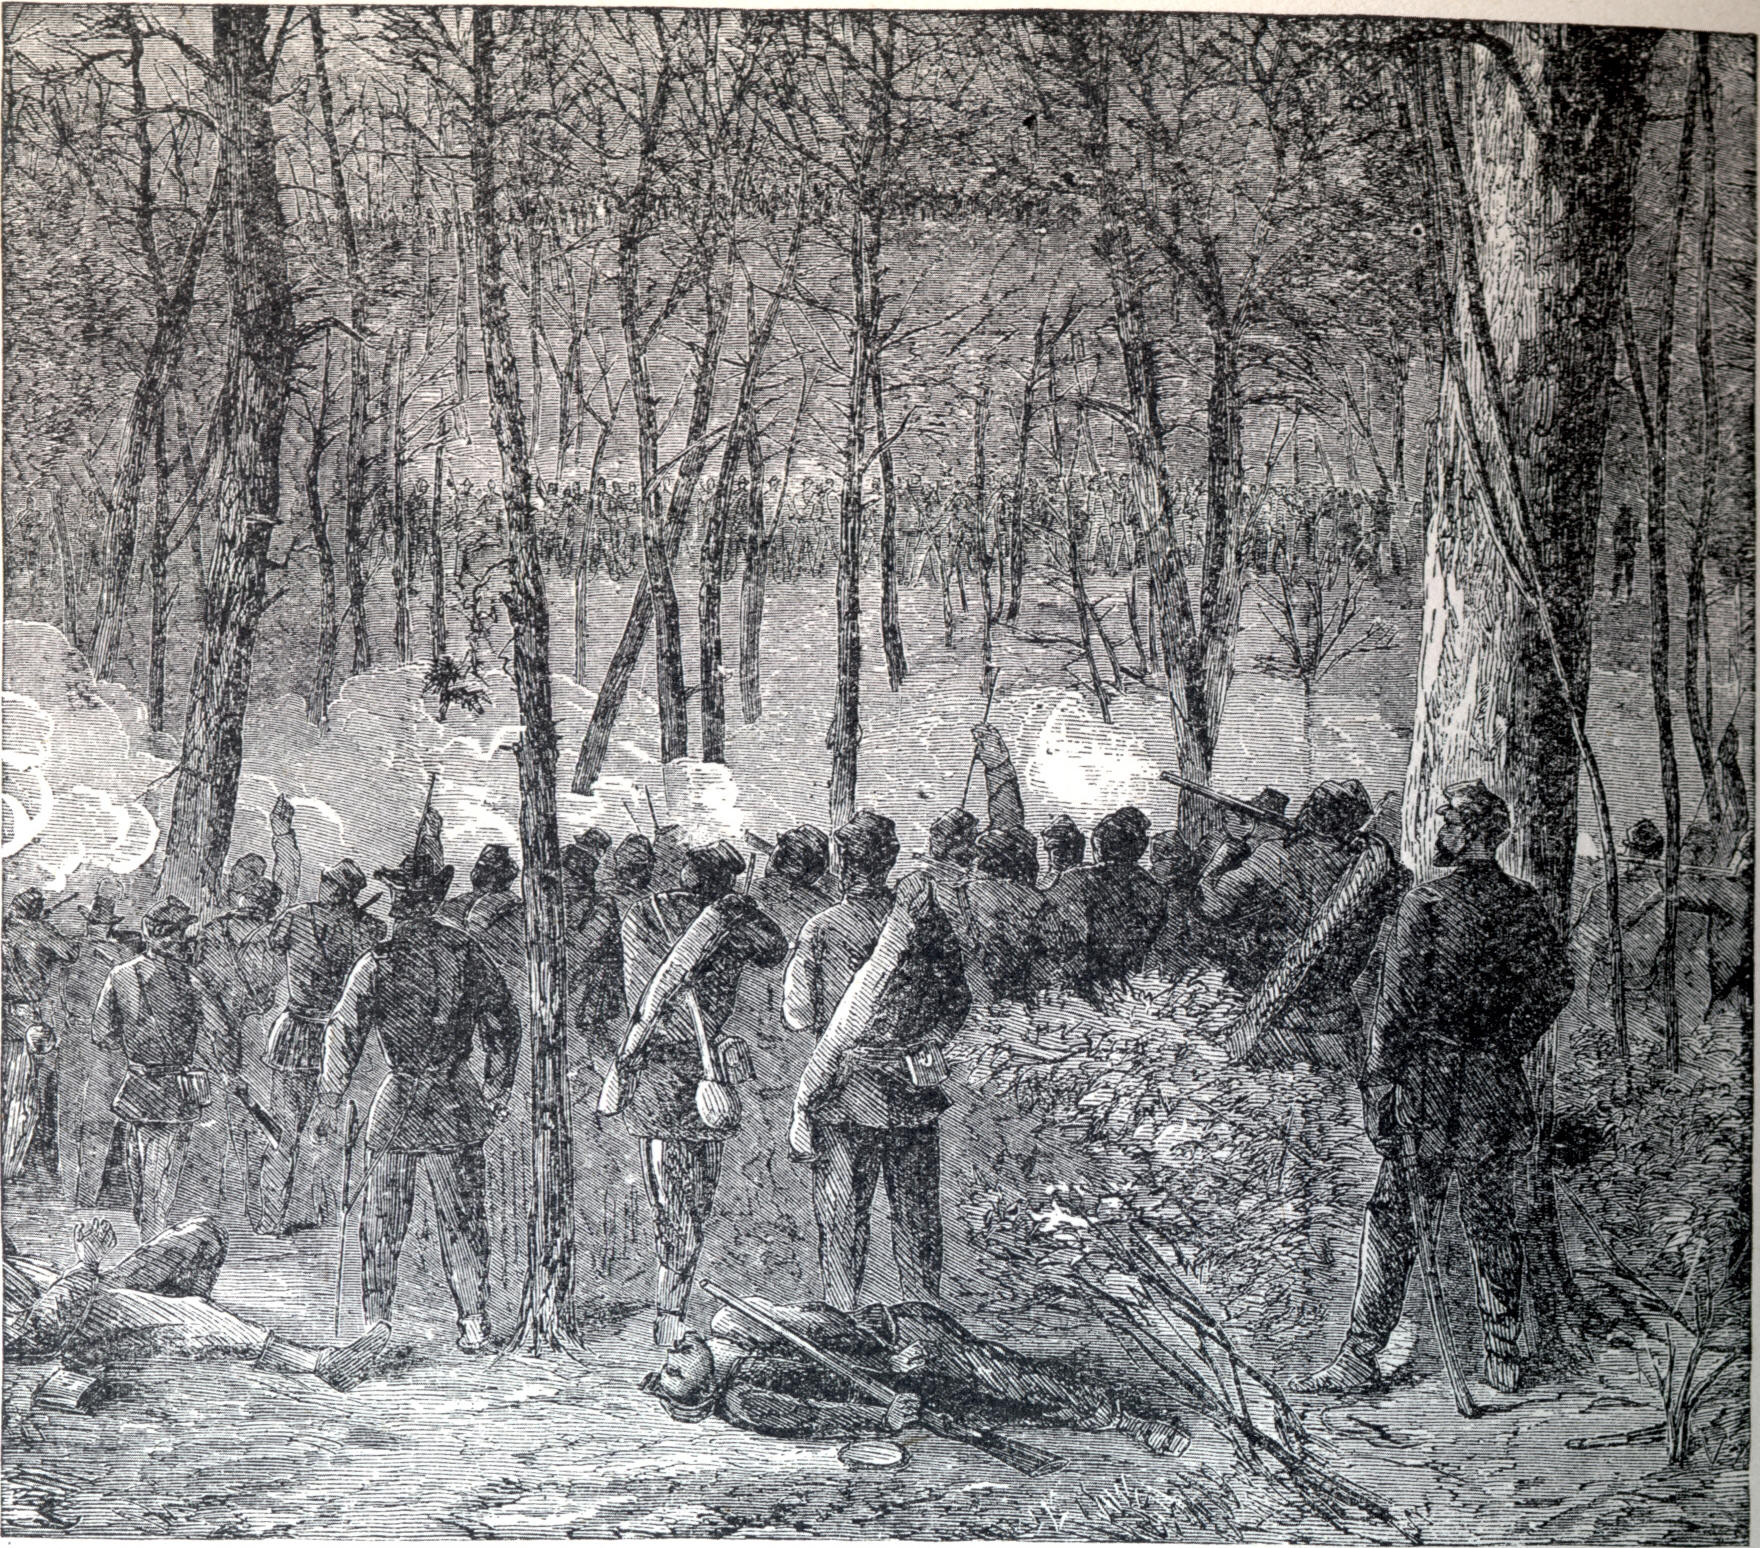 general robert e lee and the battle of the wilderness essay The battle of the wilderness was initiated on may 5, 1864 when the army of the potomac began its spring offensive by marching quickly through the wilderness once through the tangled forest, ulysses s grant planned to defeat robert e lee's army of northern virginia in a battle fought on open .